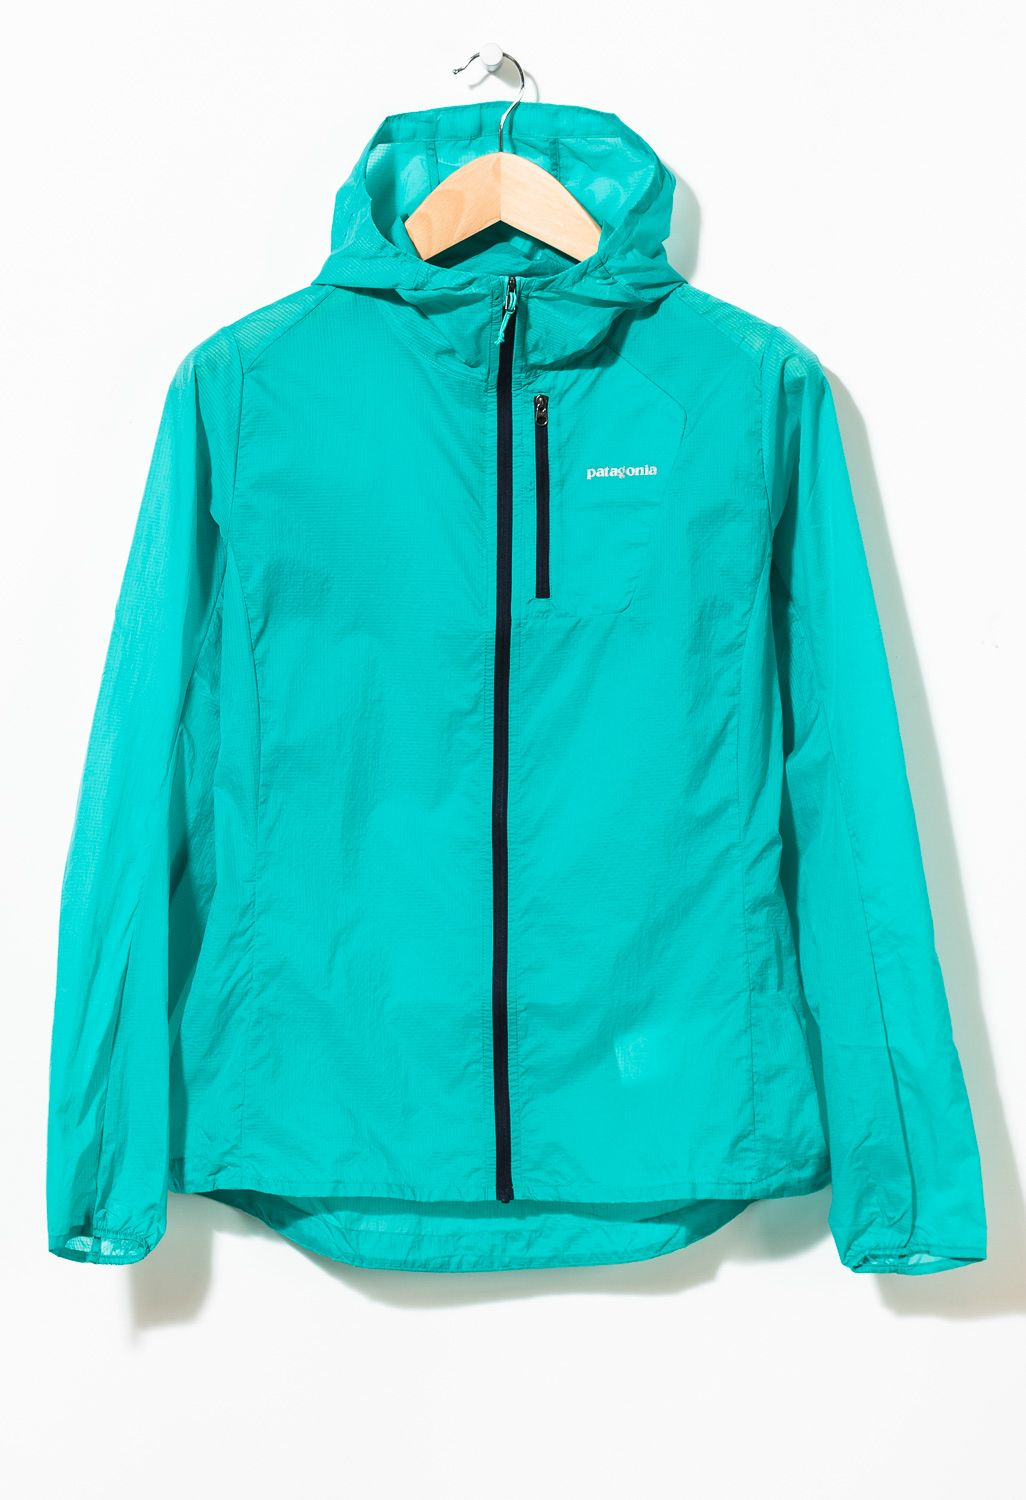 03b290019a6a Patagonia Women s Houdini Jacket Strait Blue 0